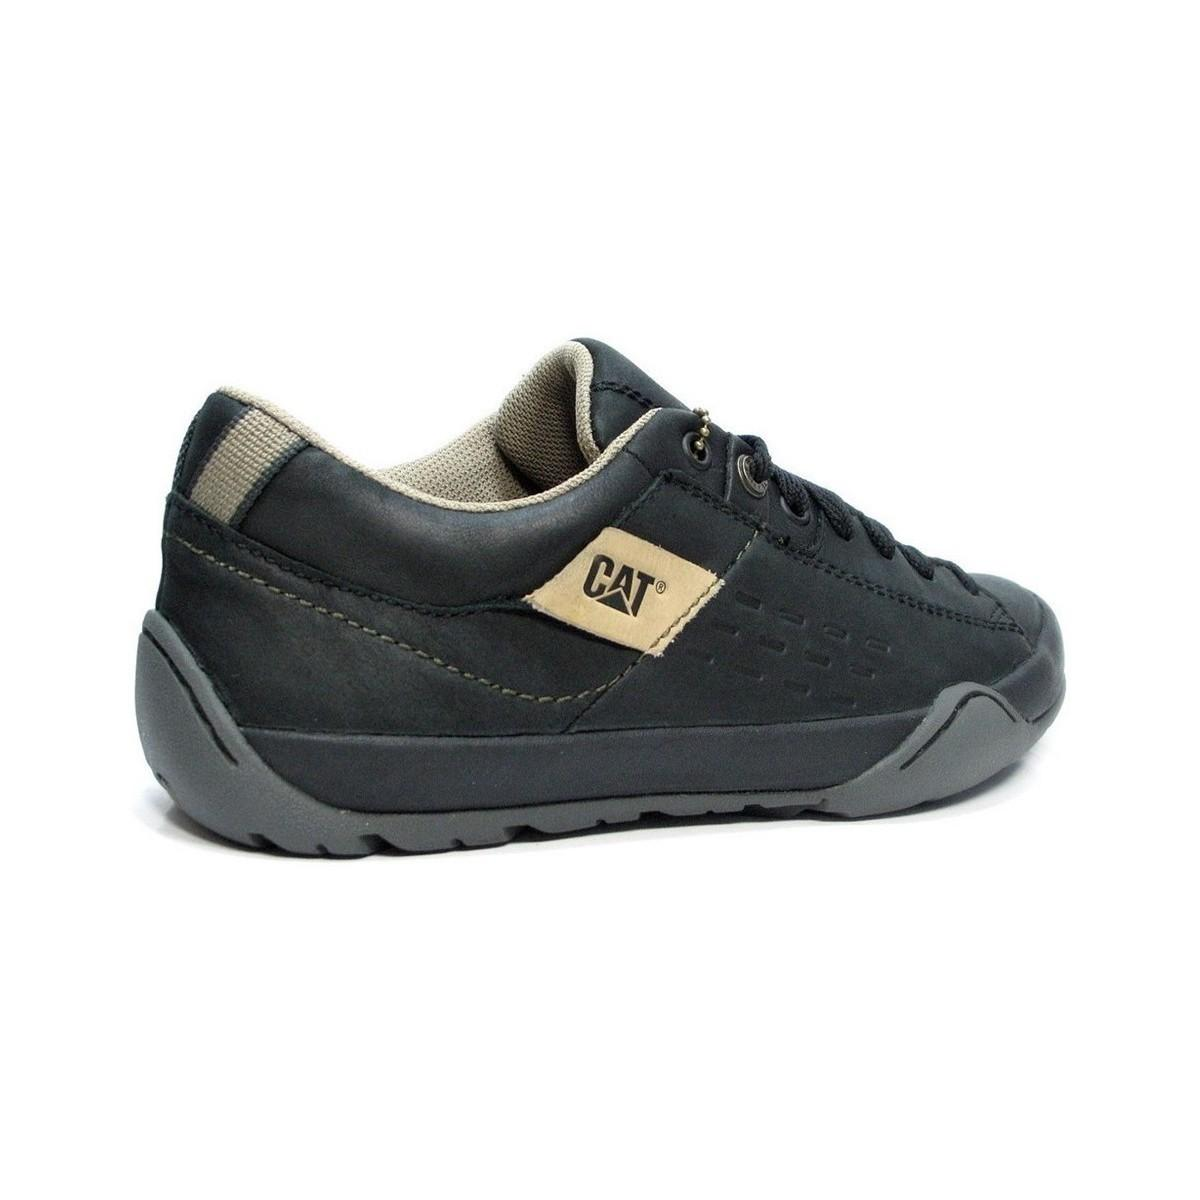 Caterpillar Downforce Men's Shoes (trainers) In Black for Men